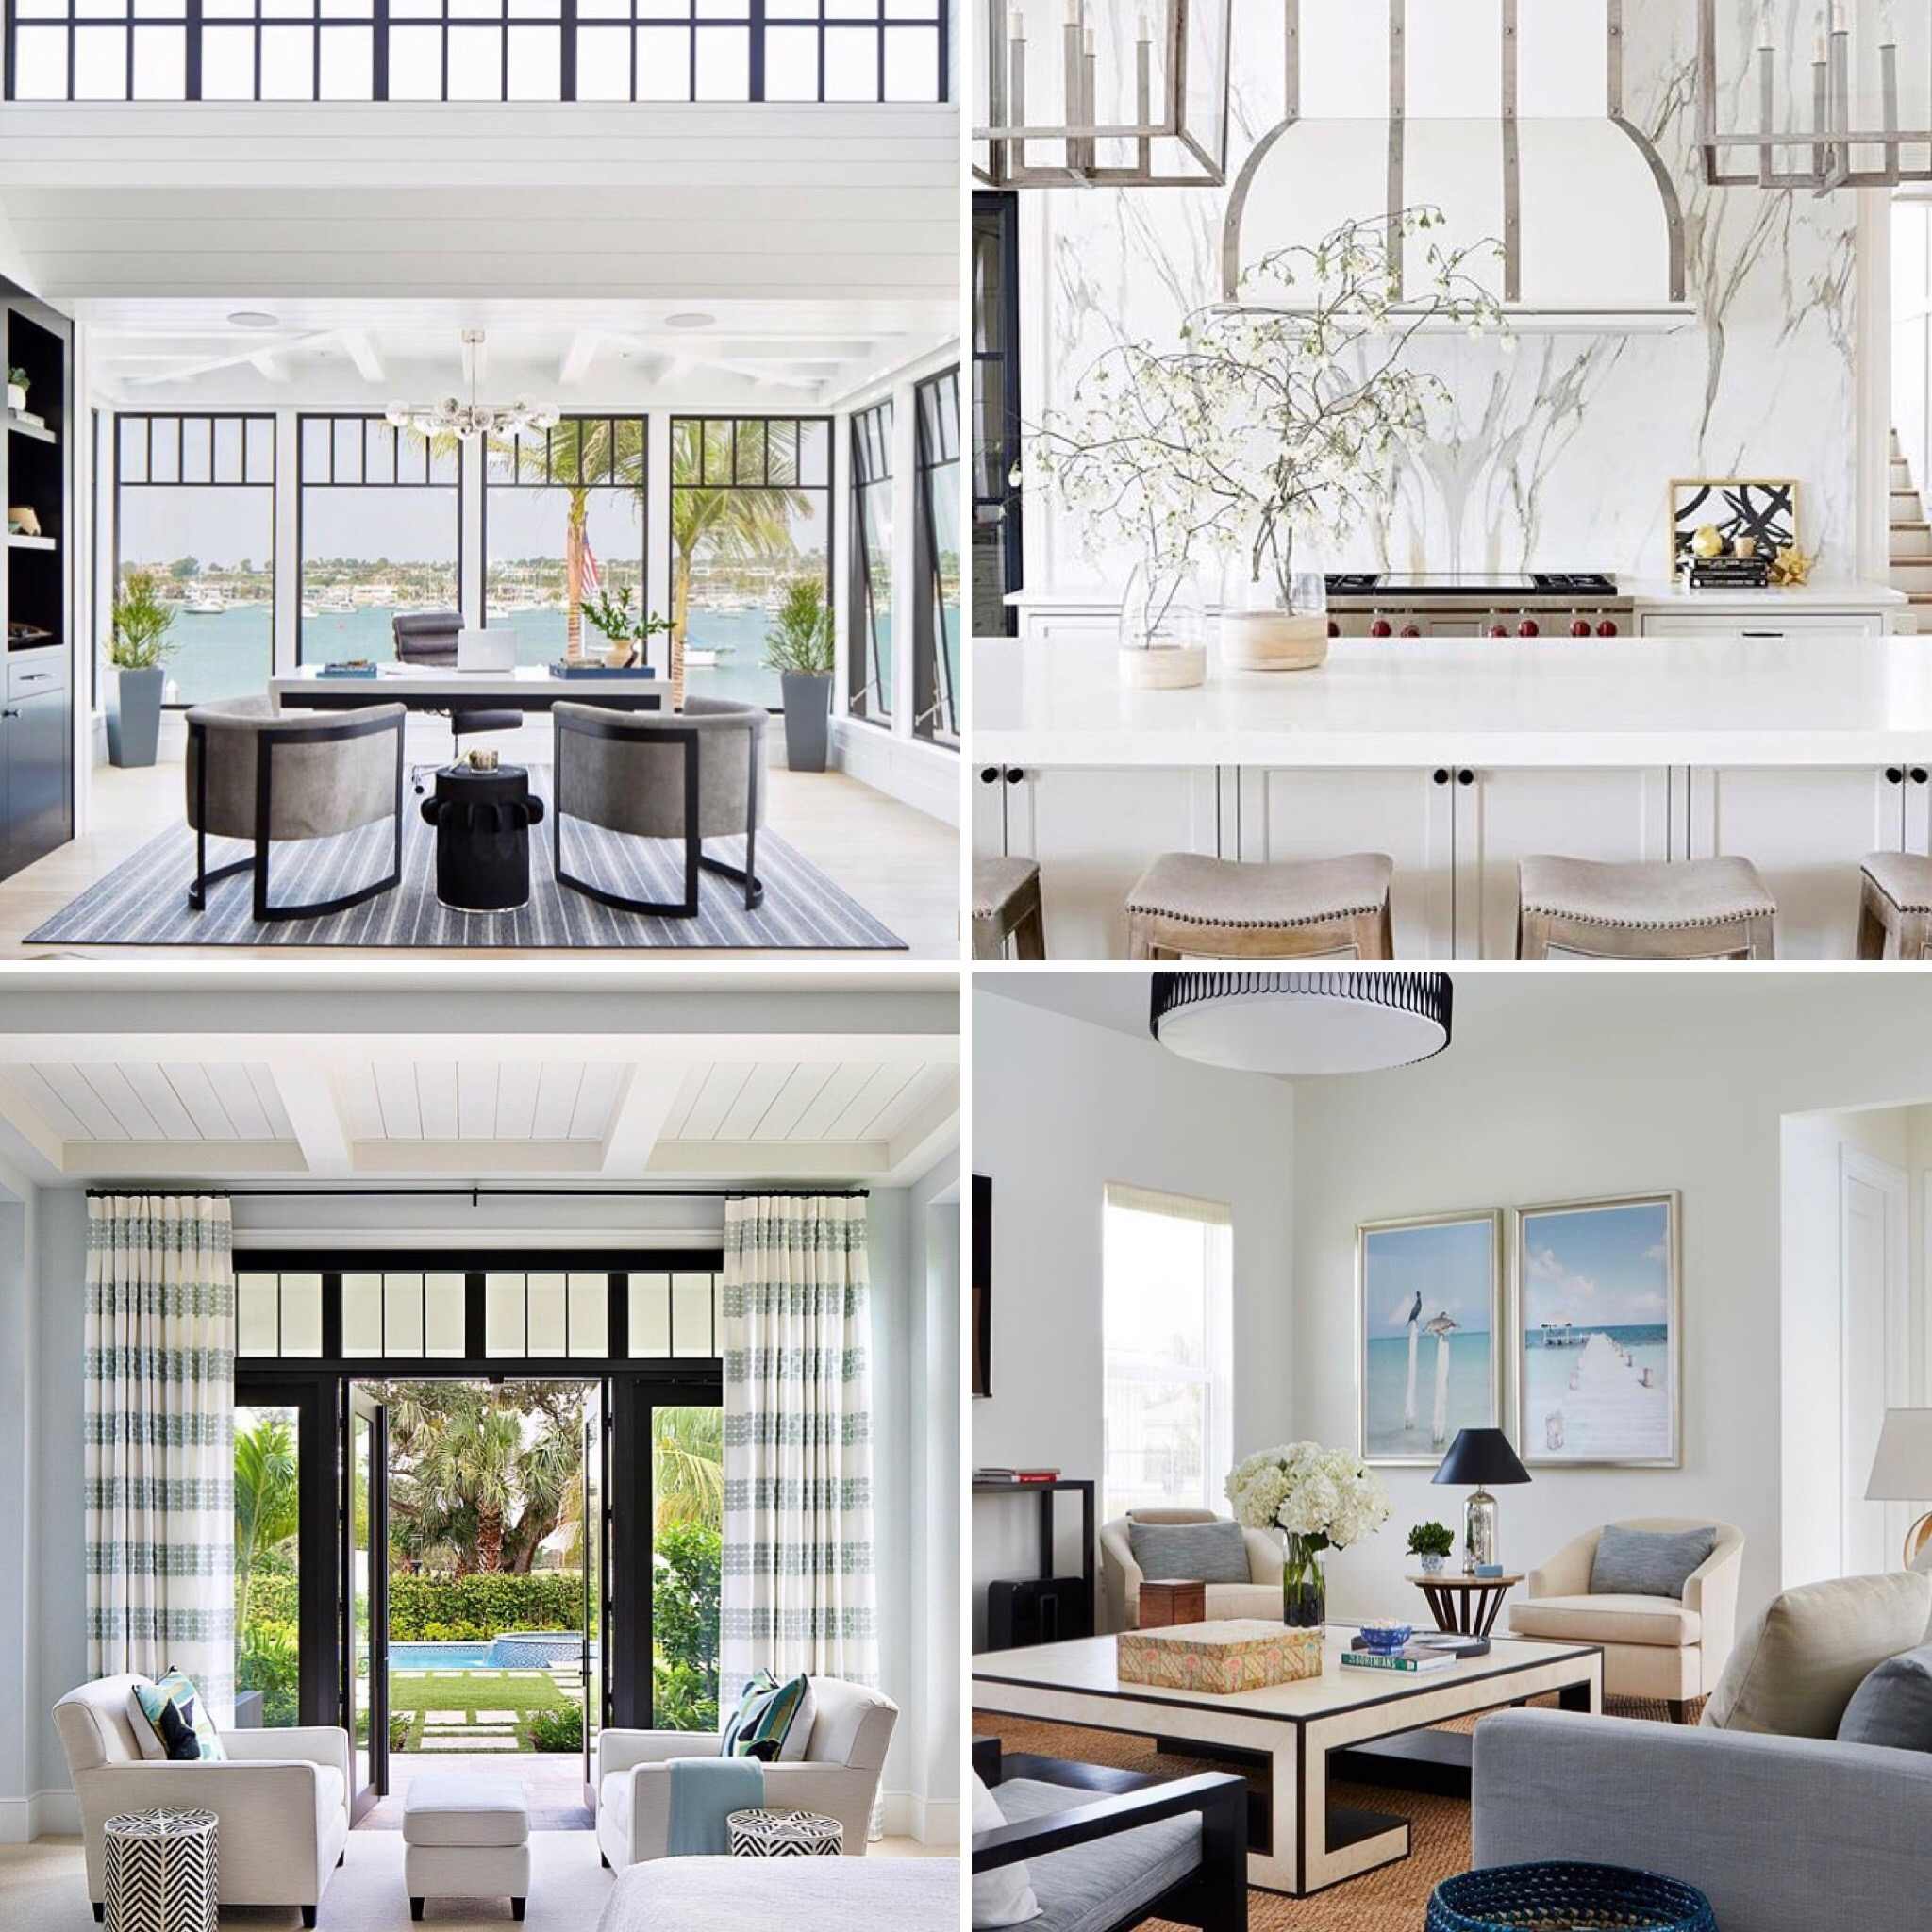 - Brittany definitely has an eye for modern and elegant coastal decor and her favorite accounts on the gram reflect that. We are getting some serious inspo from all the #SoFlo and #PalmBeach vibes in her fav insta accounts.